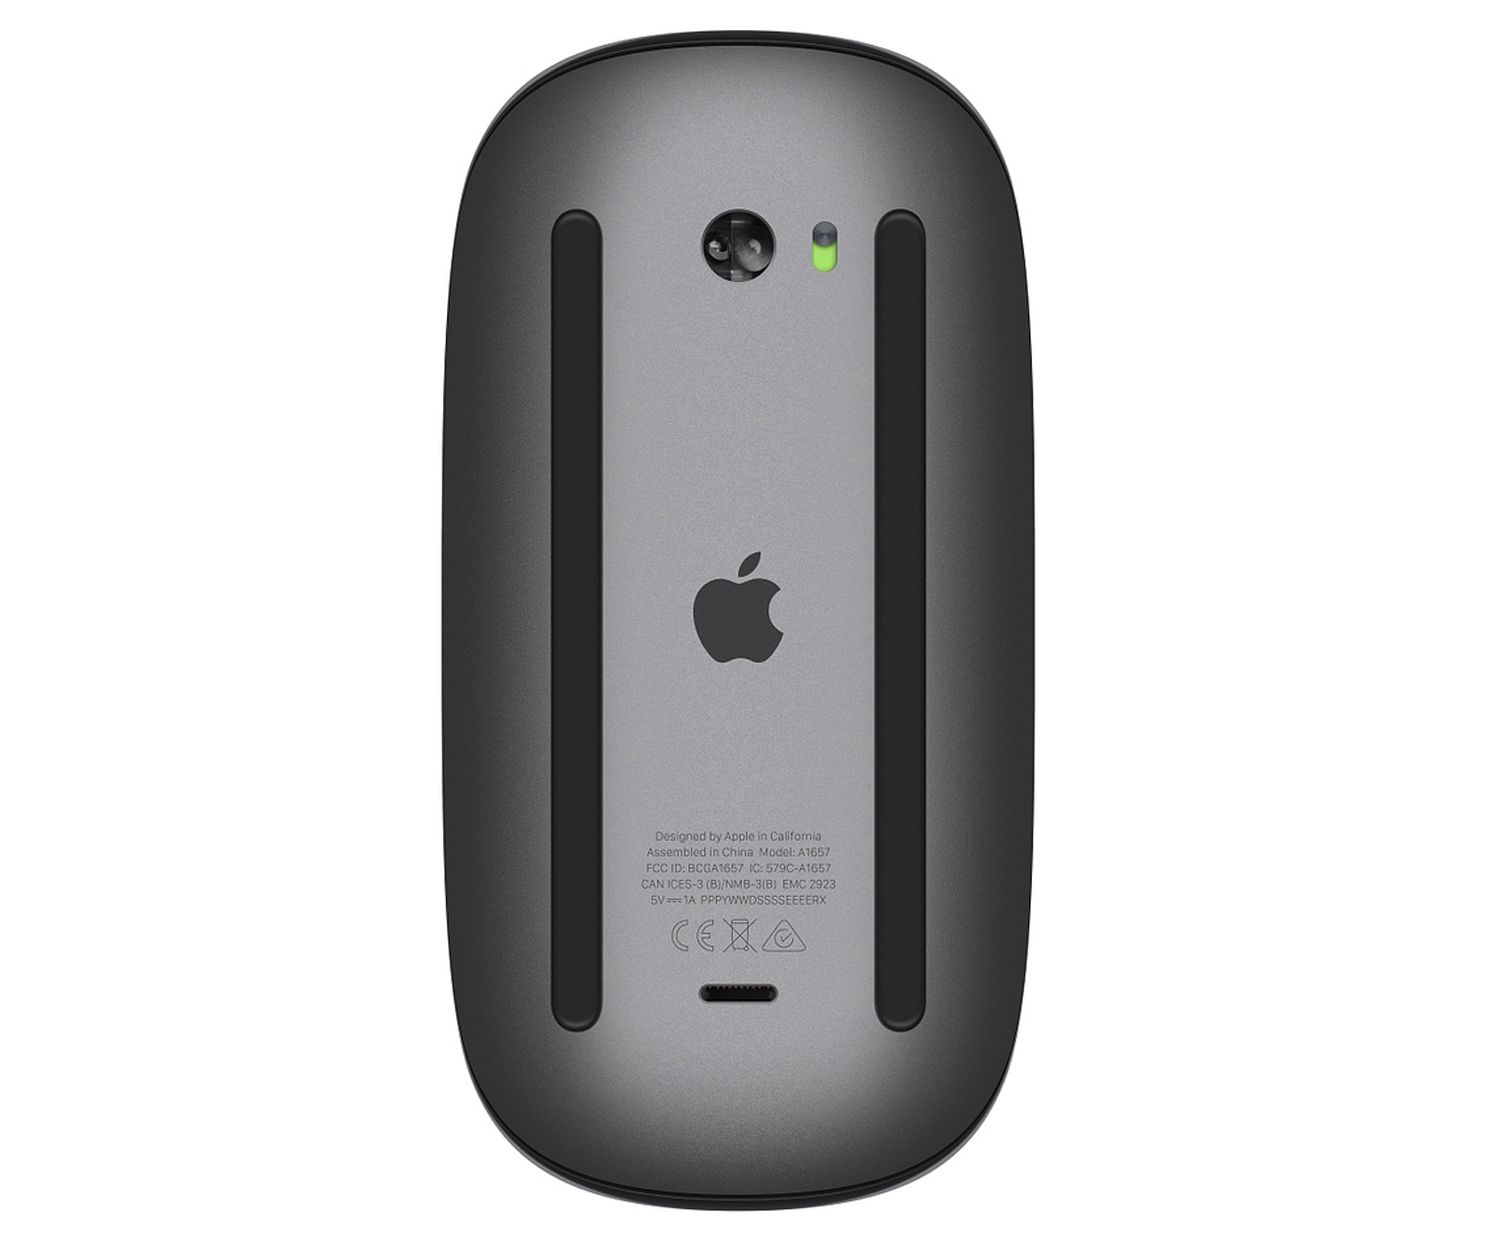 Magic Mouse 2: How Good is This Mouse?